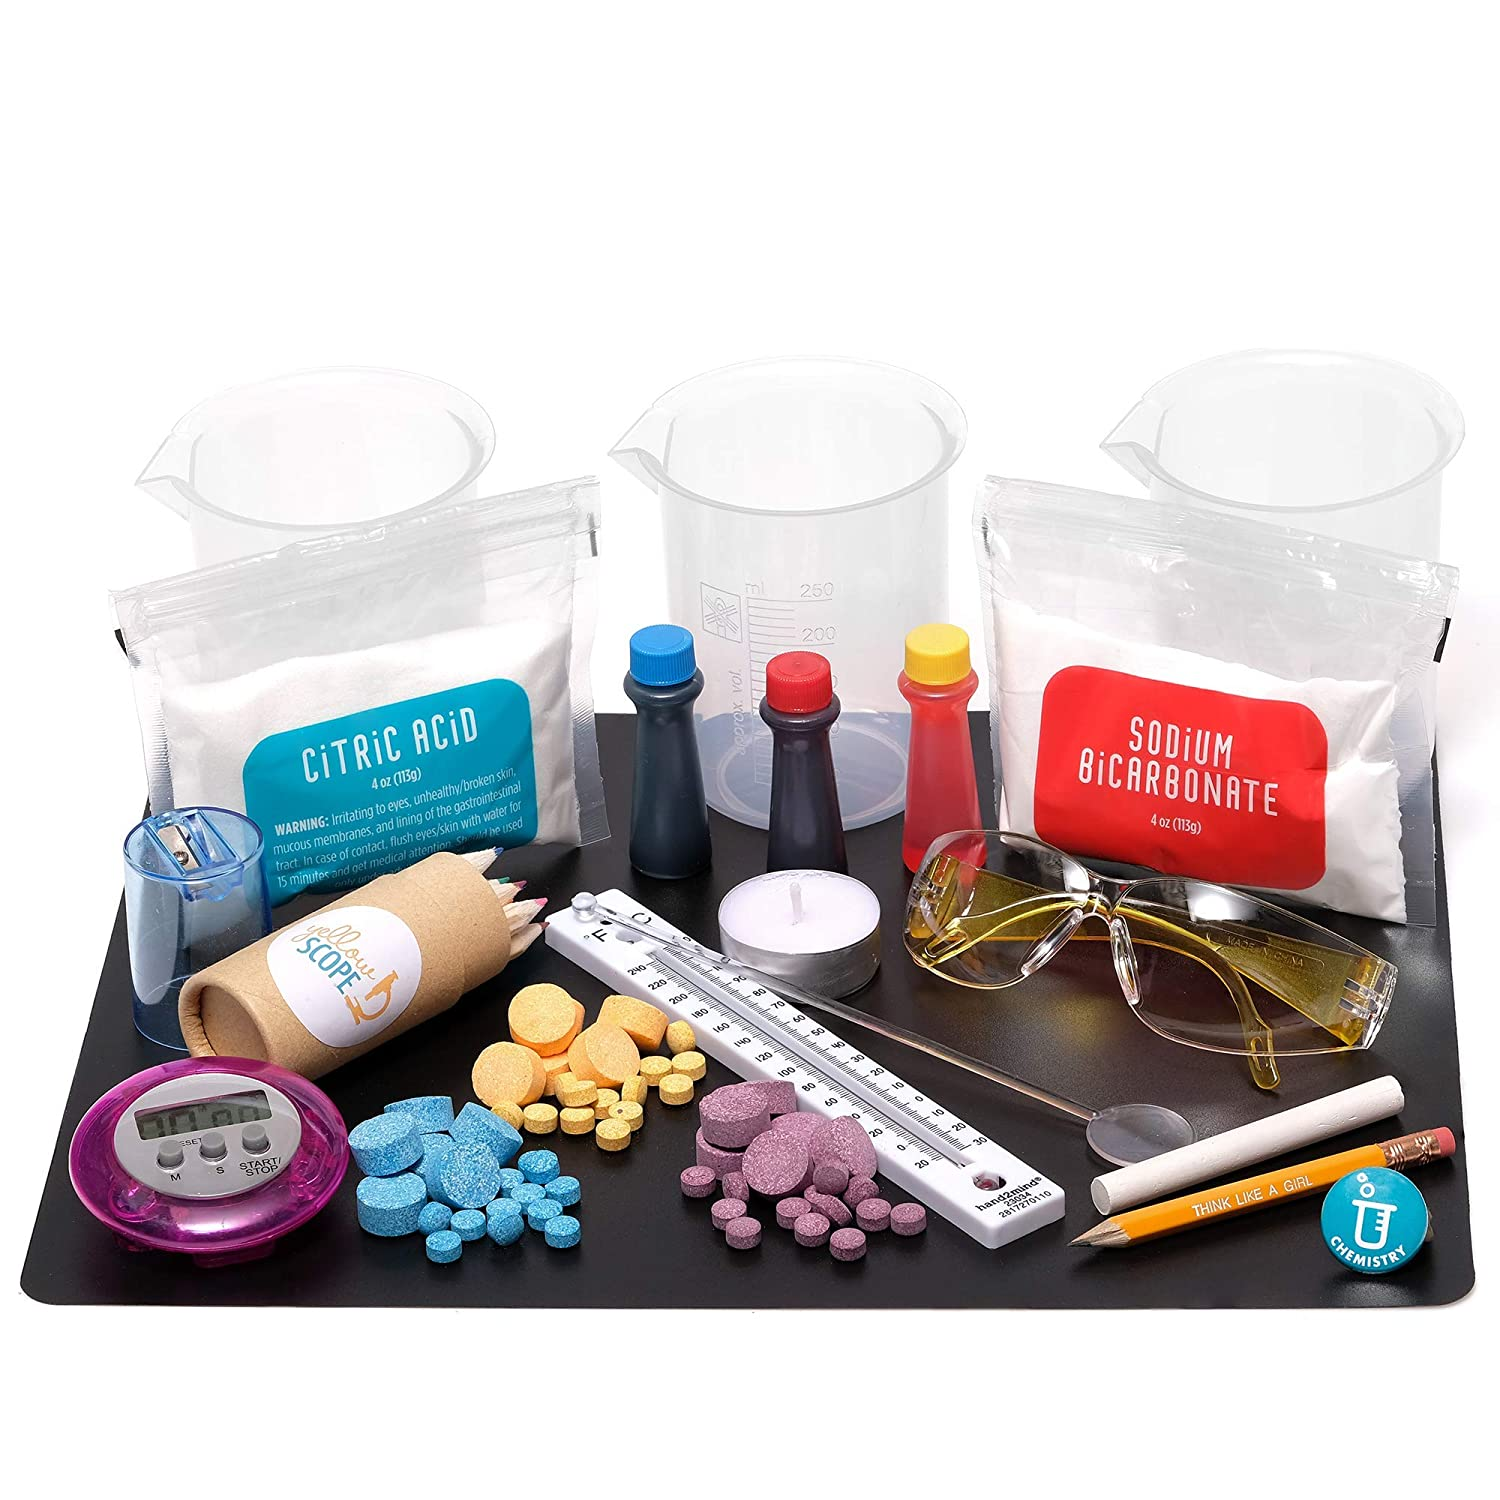 Top 13 Best Chemistry Set for Kids Reviews in 2020 3